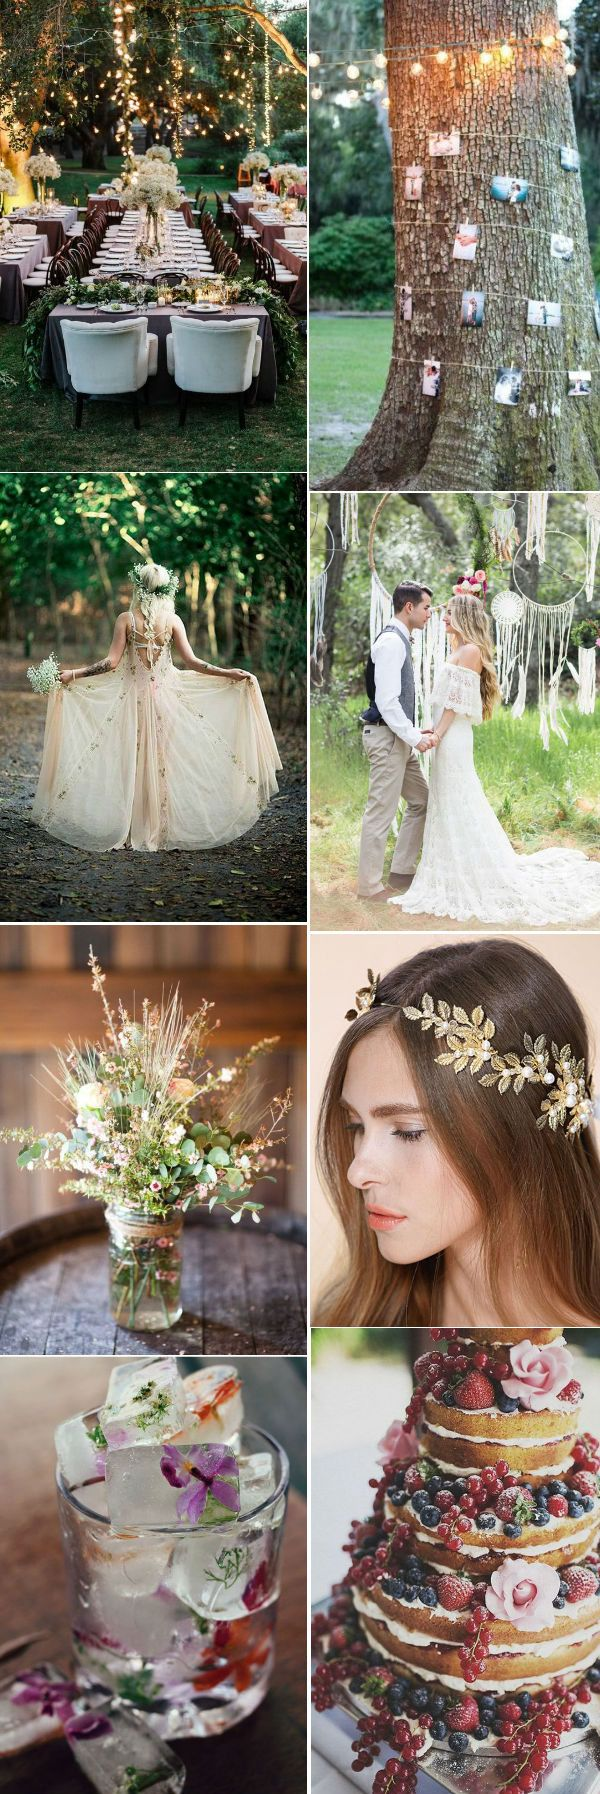 best images about diy wedding decorations on pinterest rustic